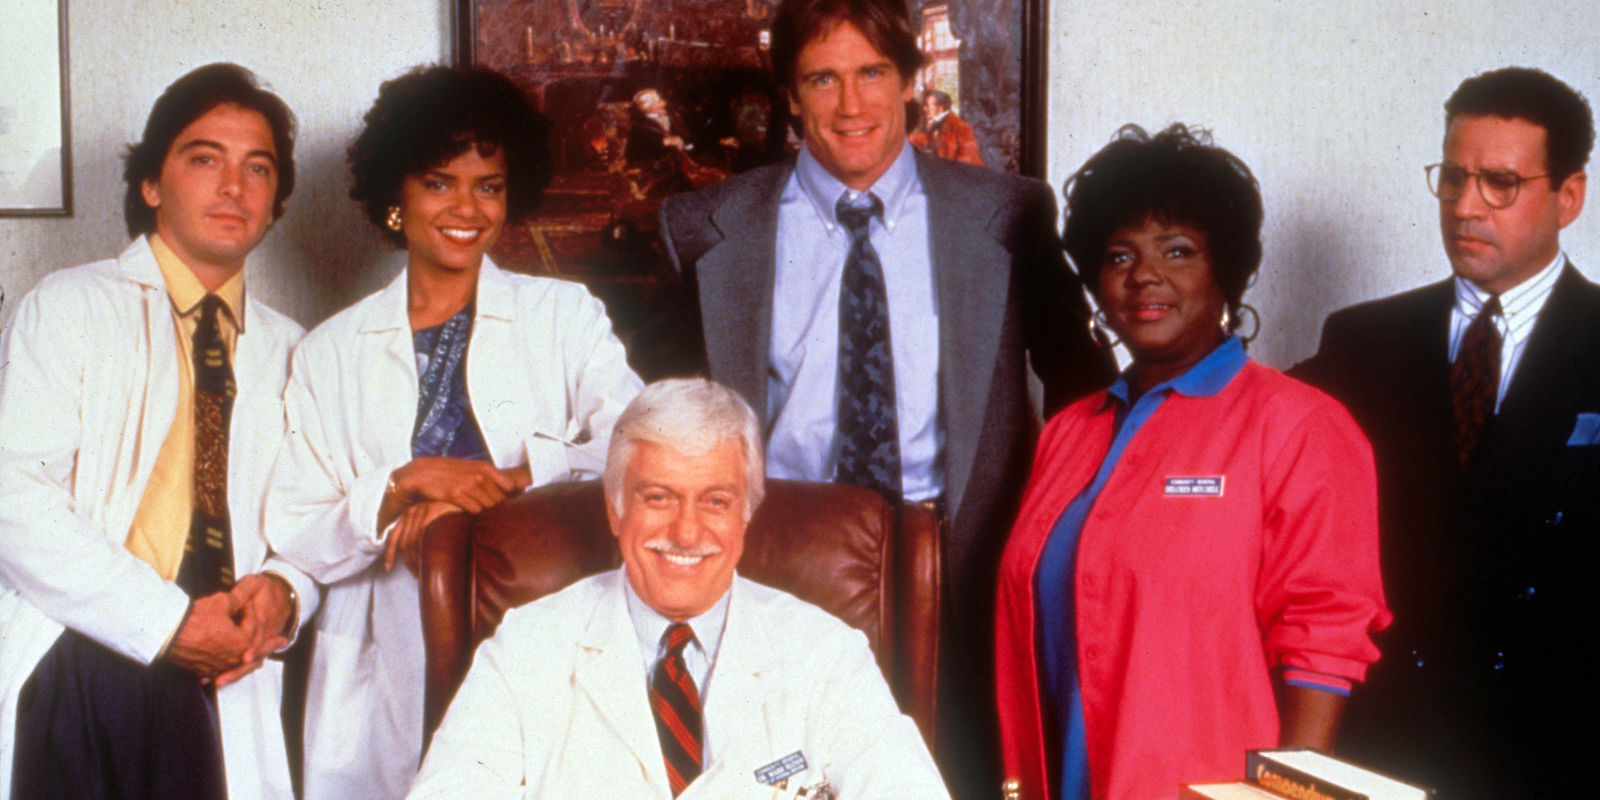 Diagnosis Murder Dick Van Dyke His Son Barry And The Rest Where